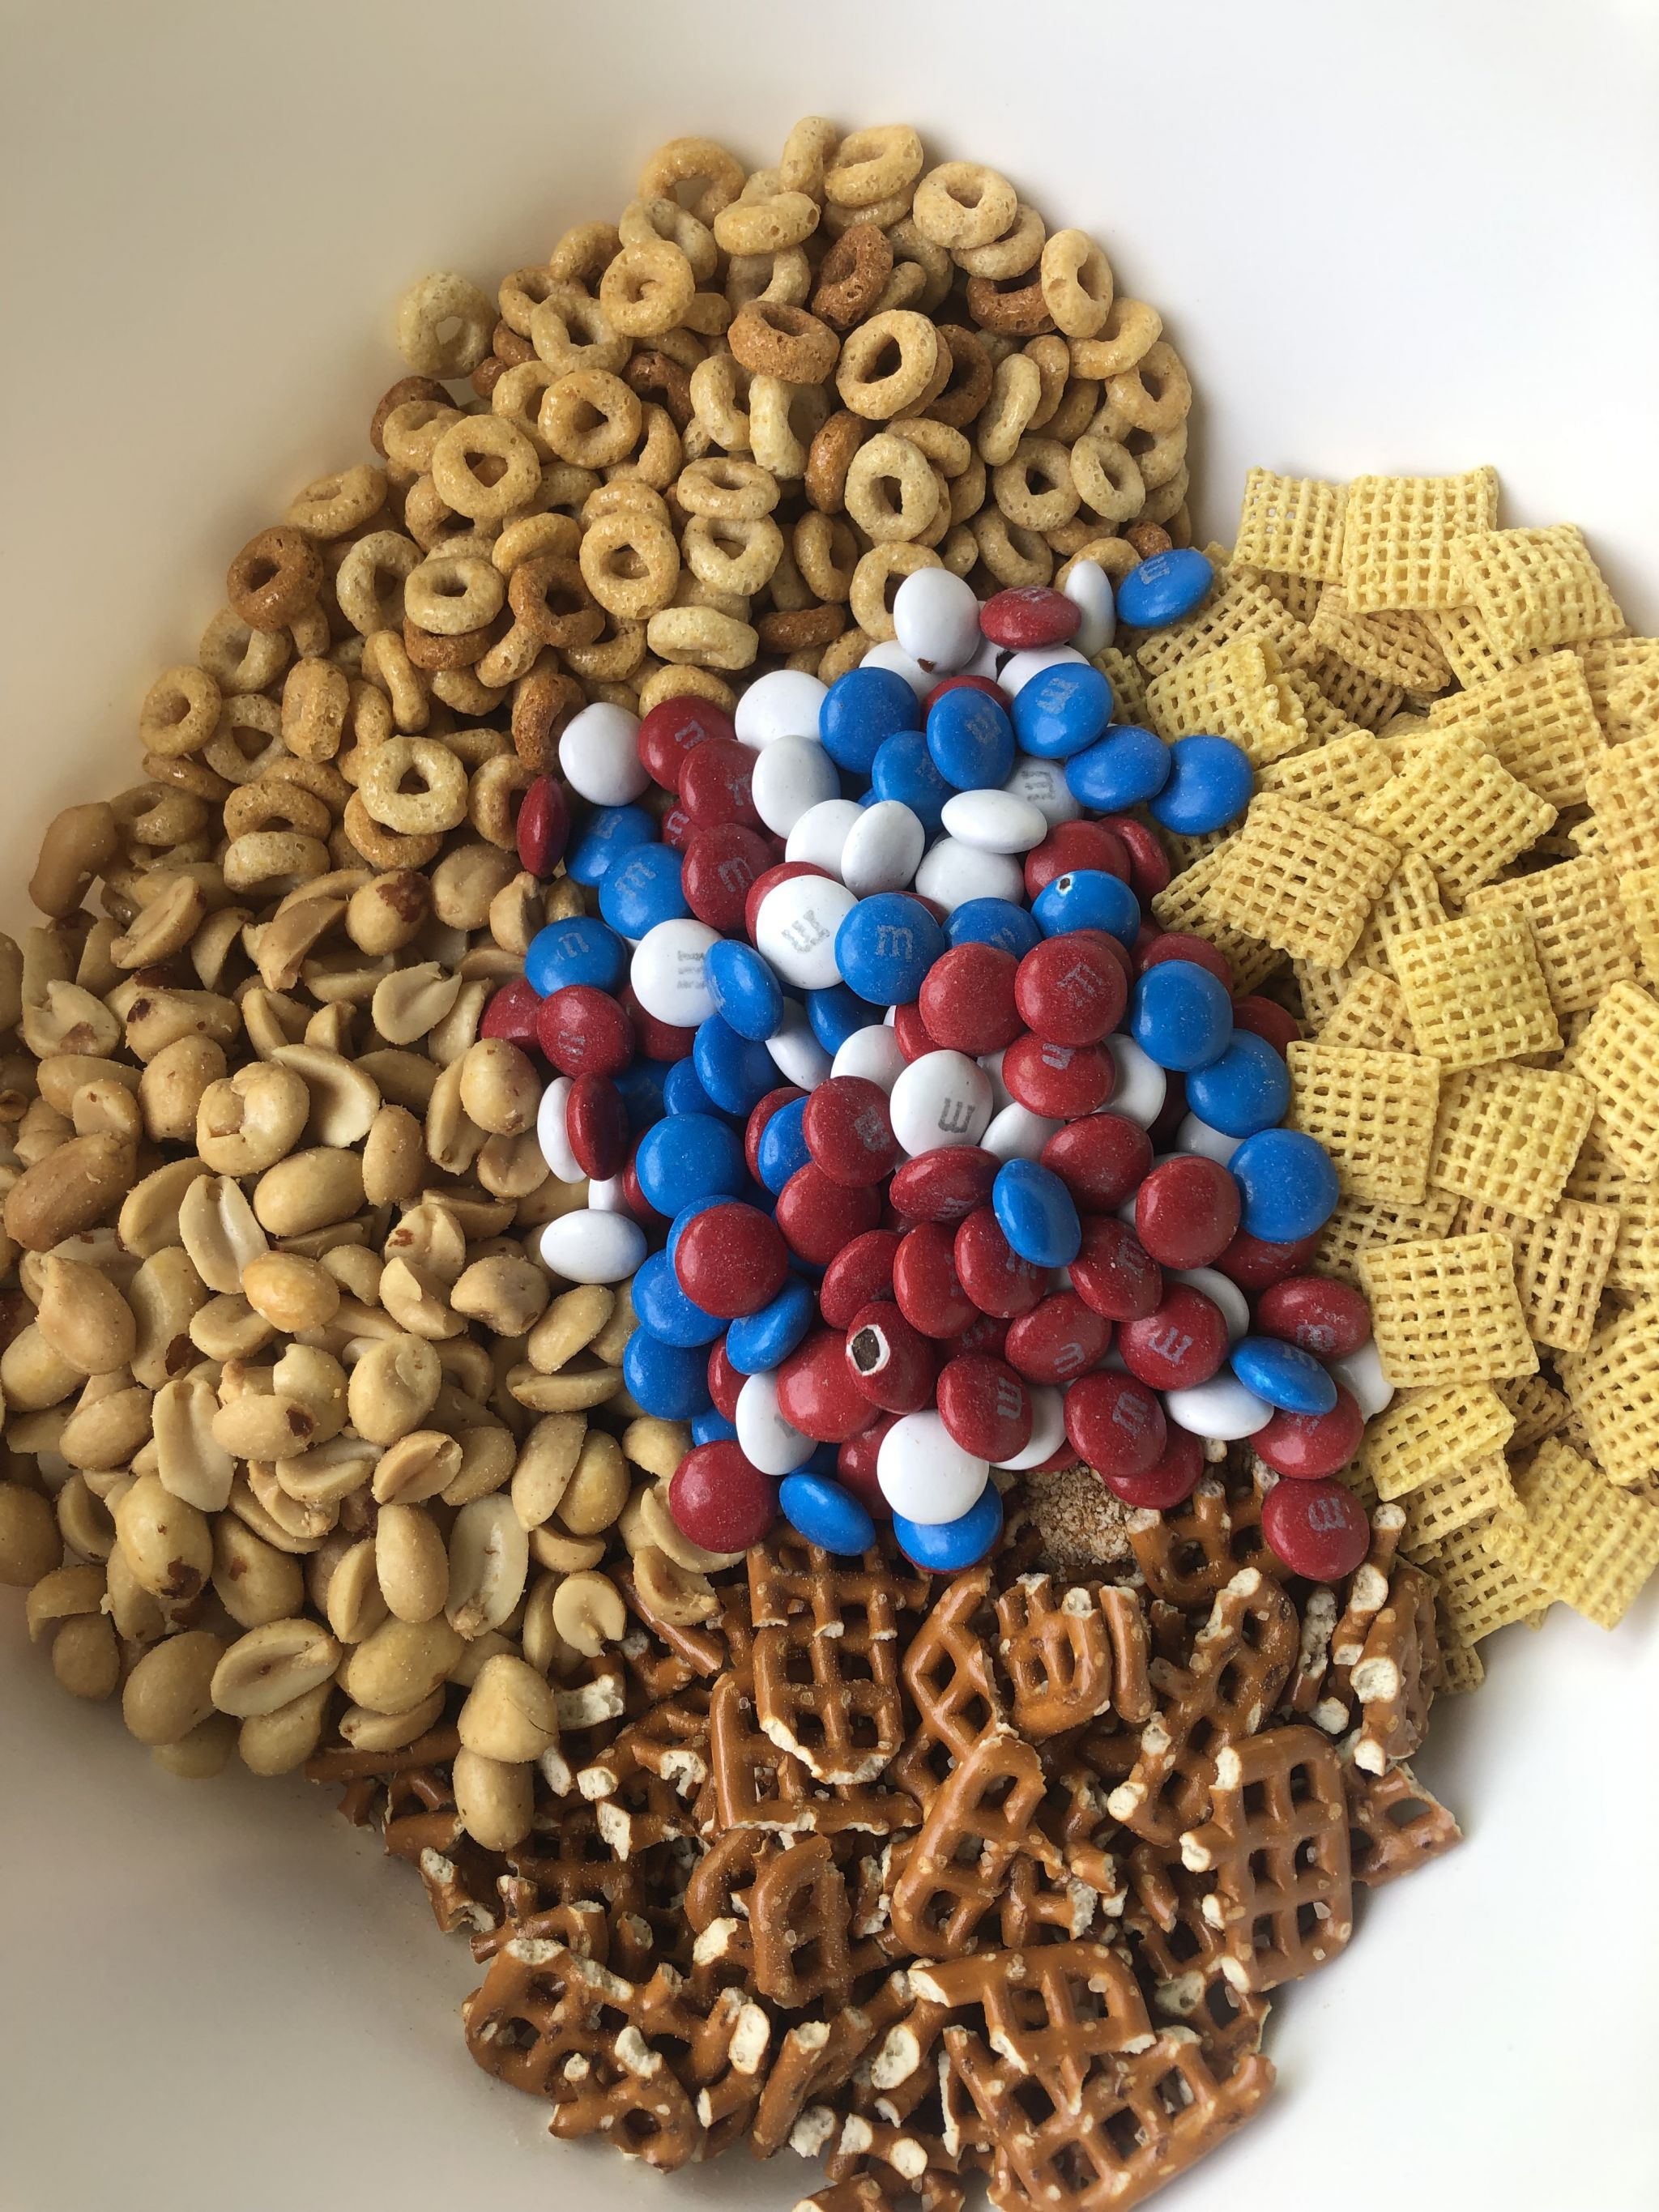 The Best Snack Mix, Coast to Coast